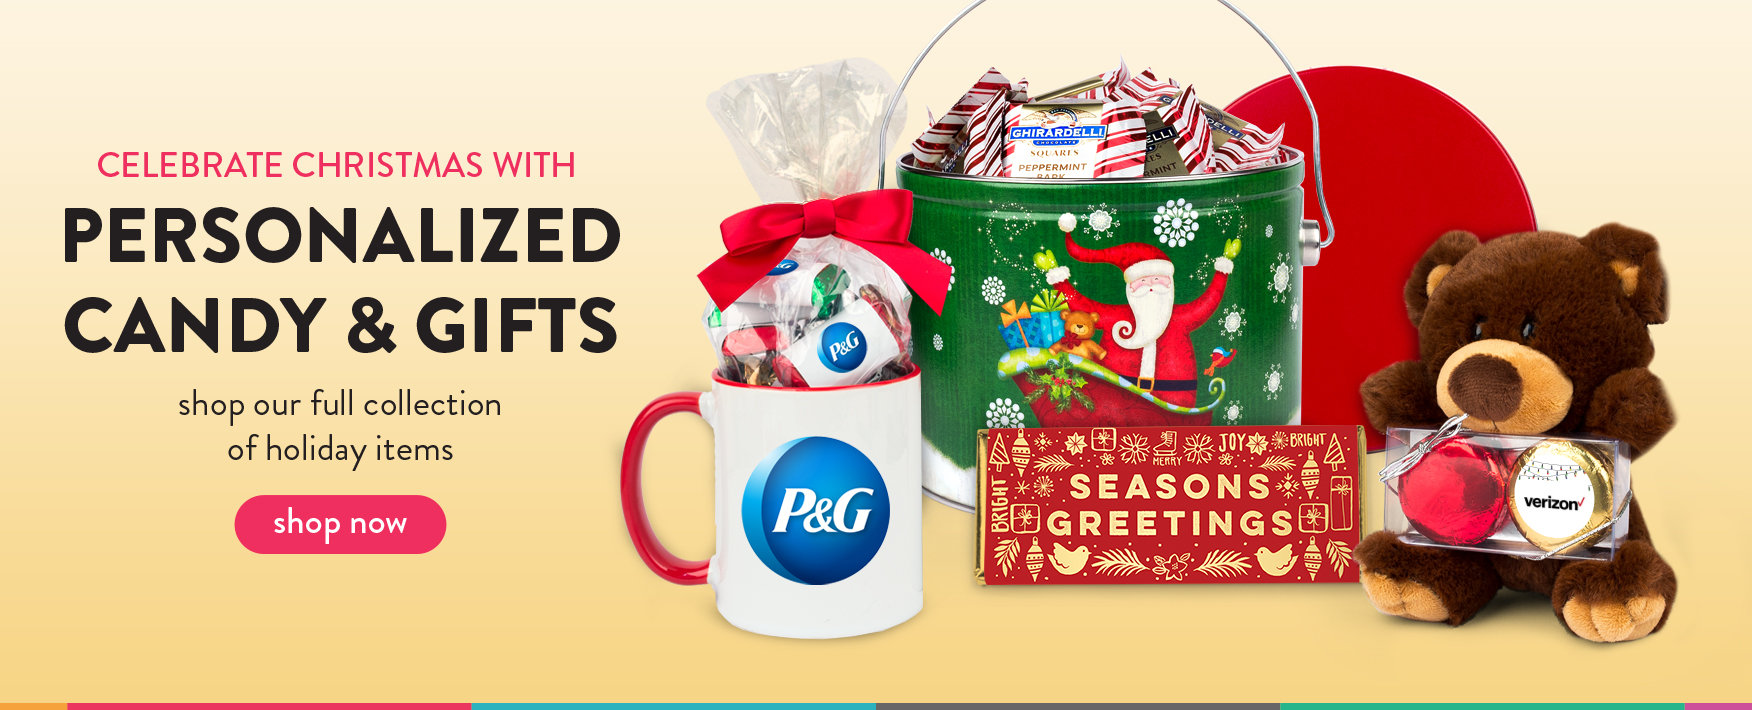 shop our full holiday collection of personalized candy favors and gifts